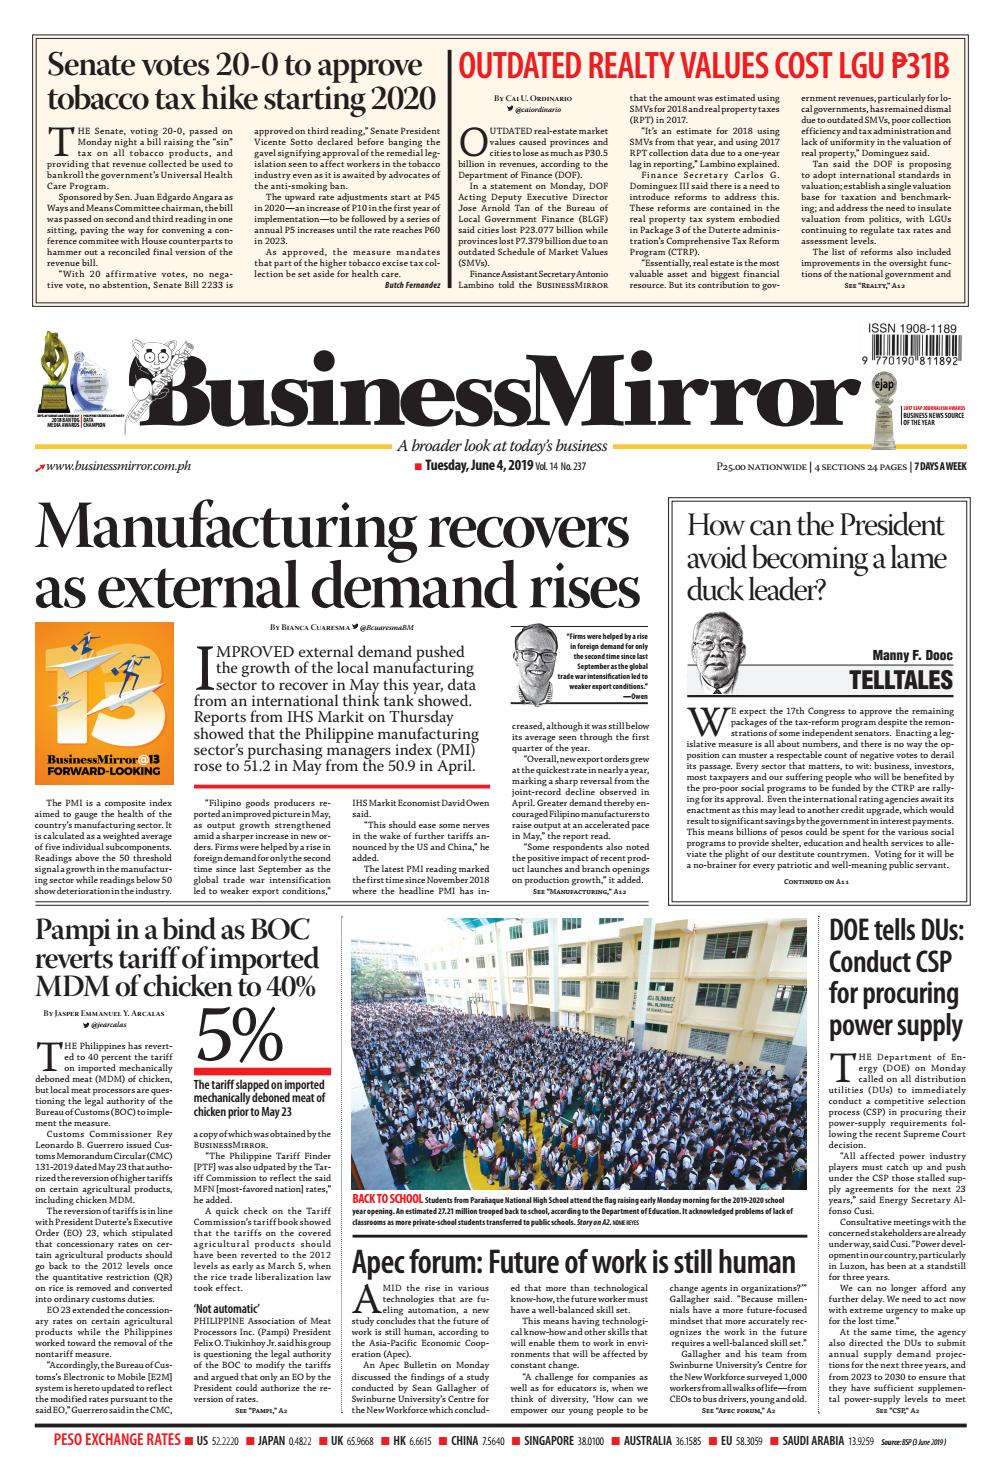 BusinessMirror June 04, 2019 by BusinessMirror - issuu